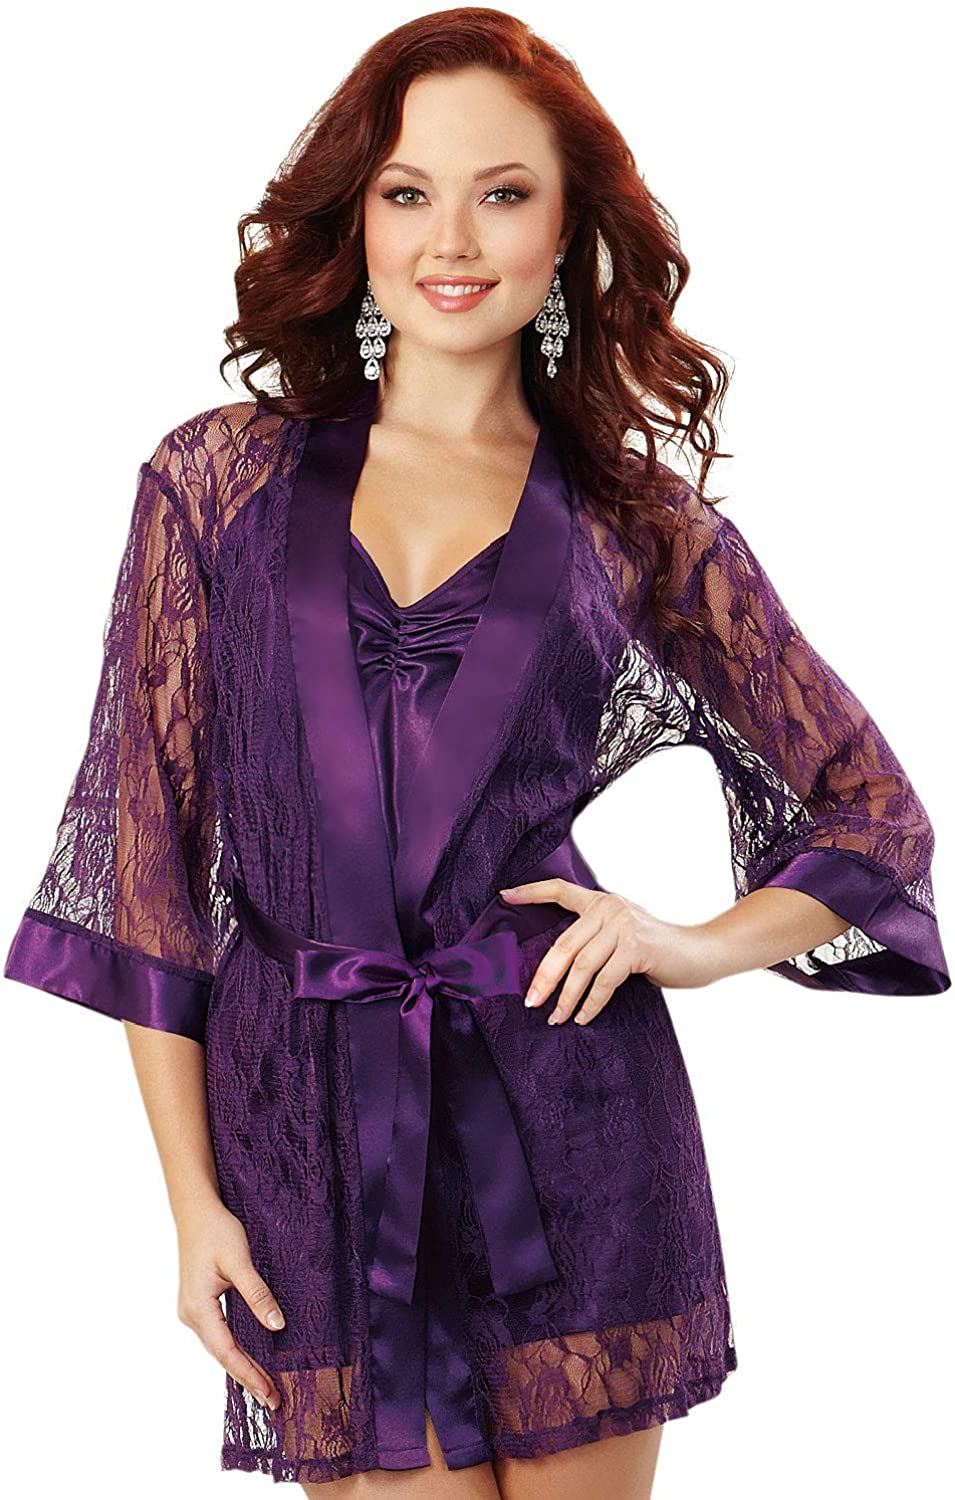 Dreamgirl Women S Stretch Lace Robe Dressing Gown Purple Plum 001 Small Size Small Amazon Co Uk Clothing